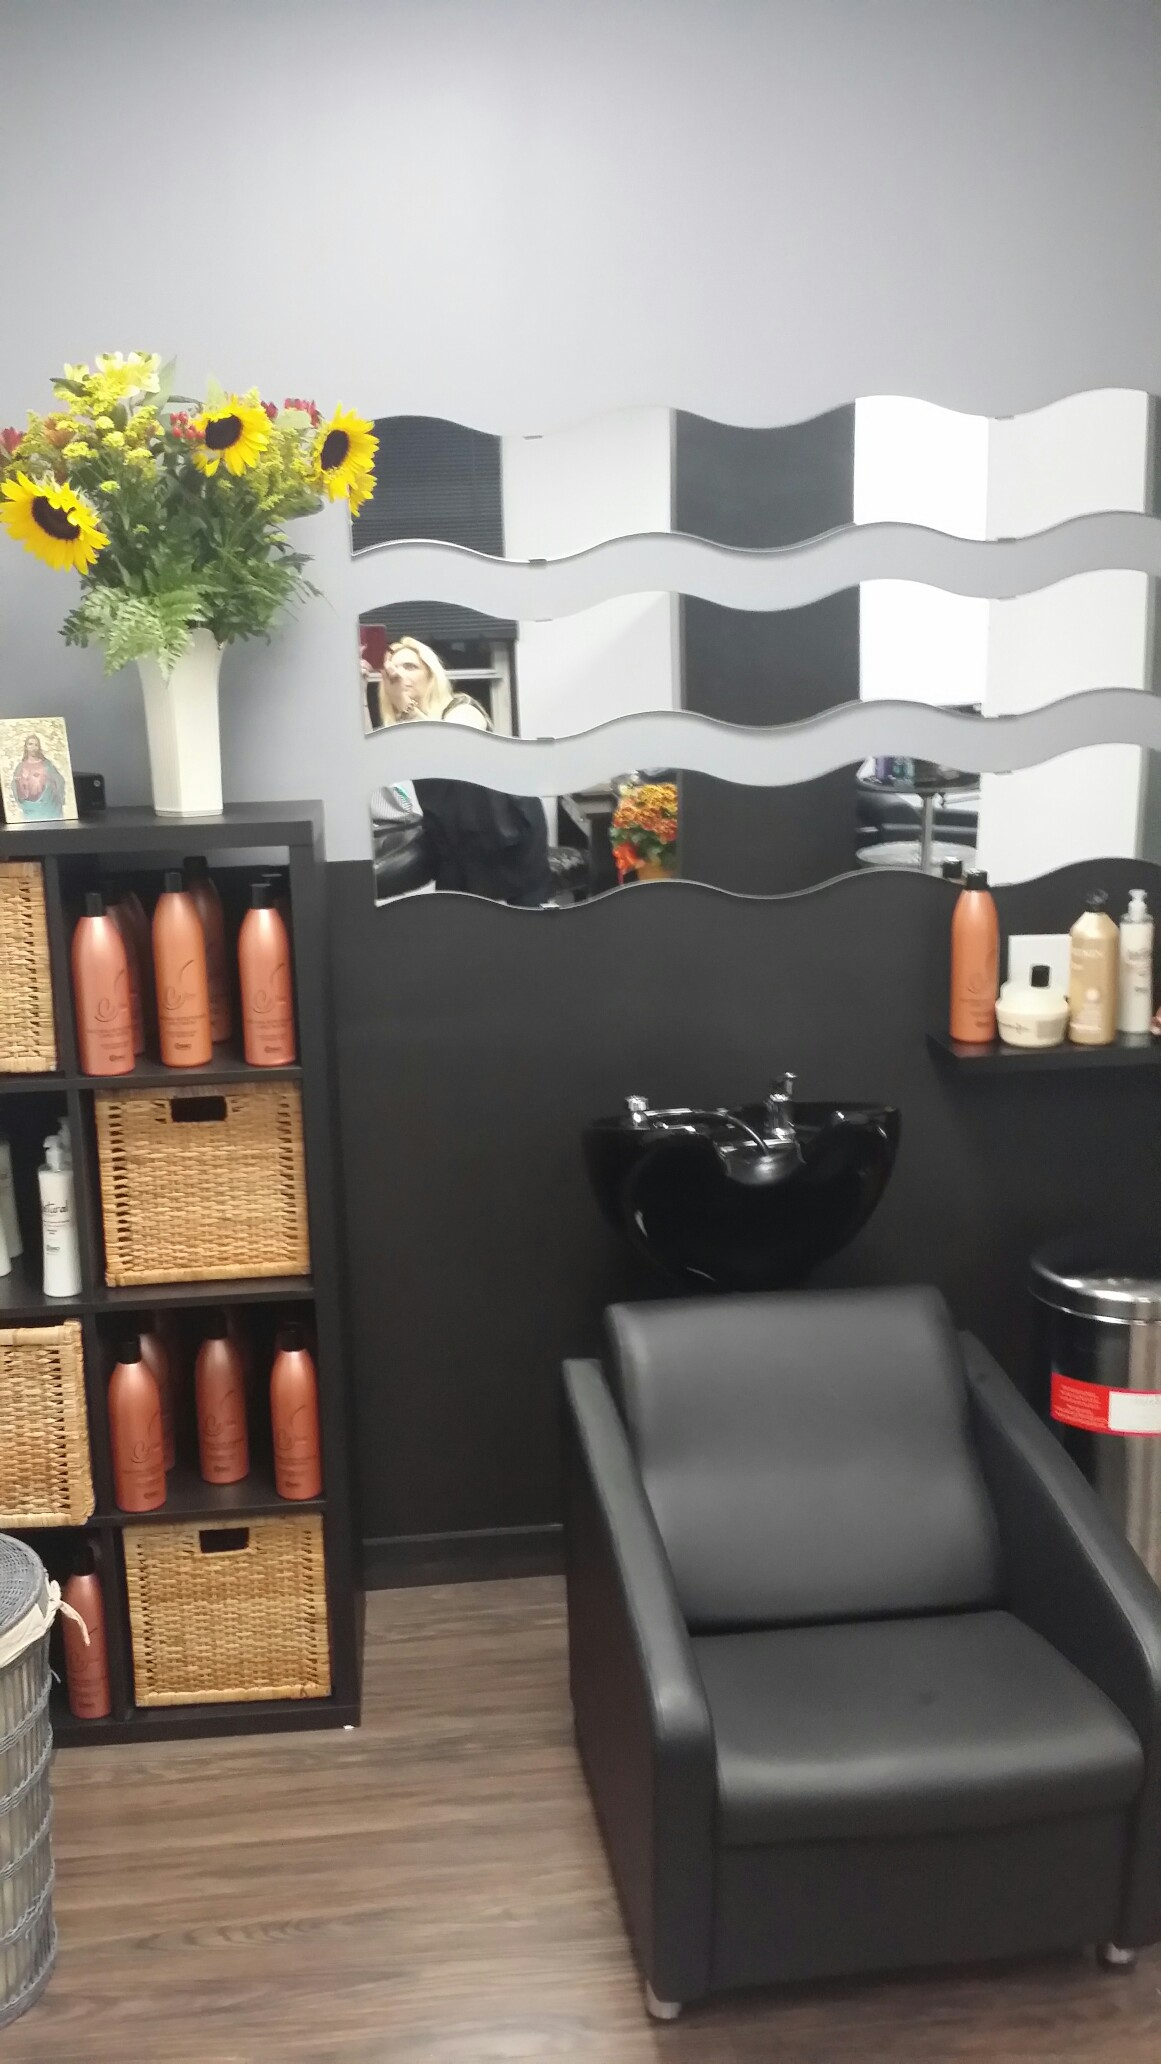 Angela's Hair & Makeup Lounge, Tarrytown NY